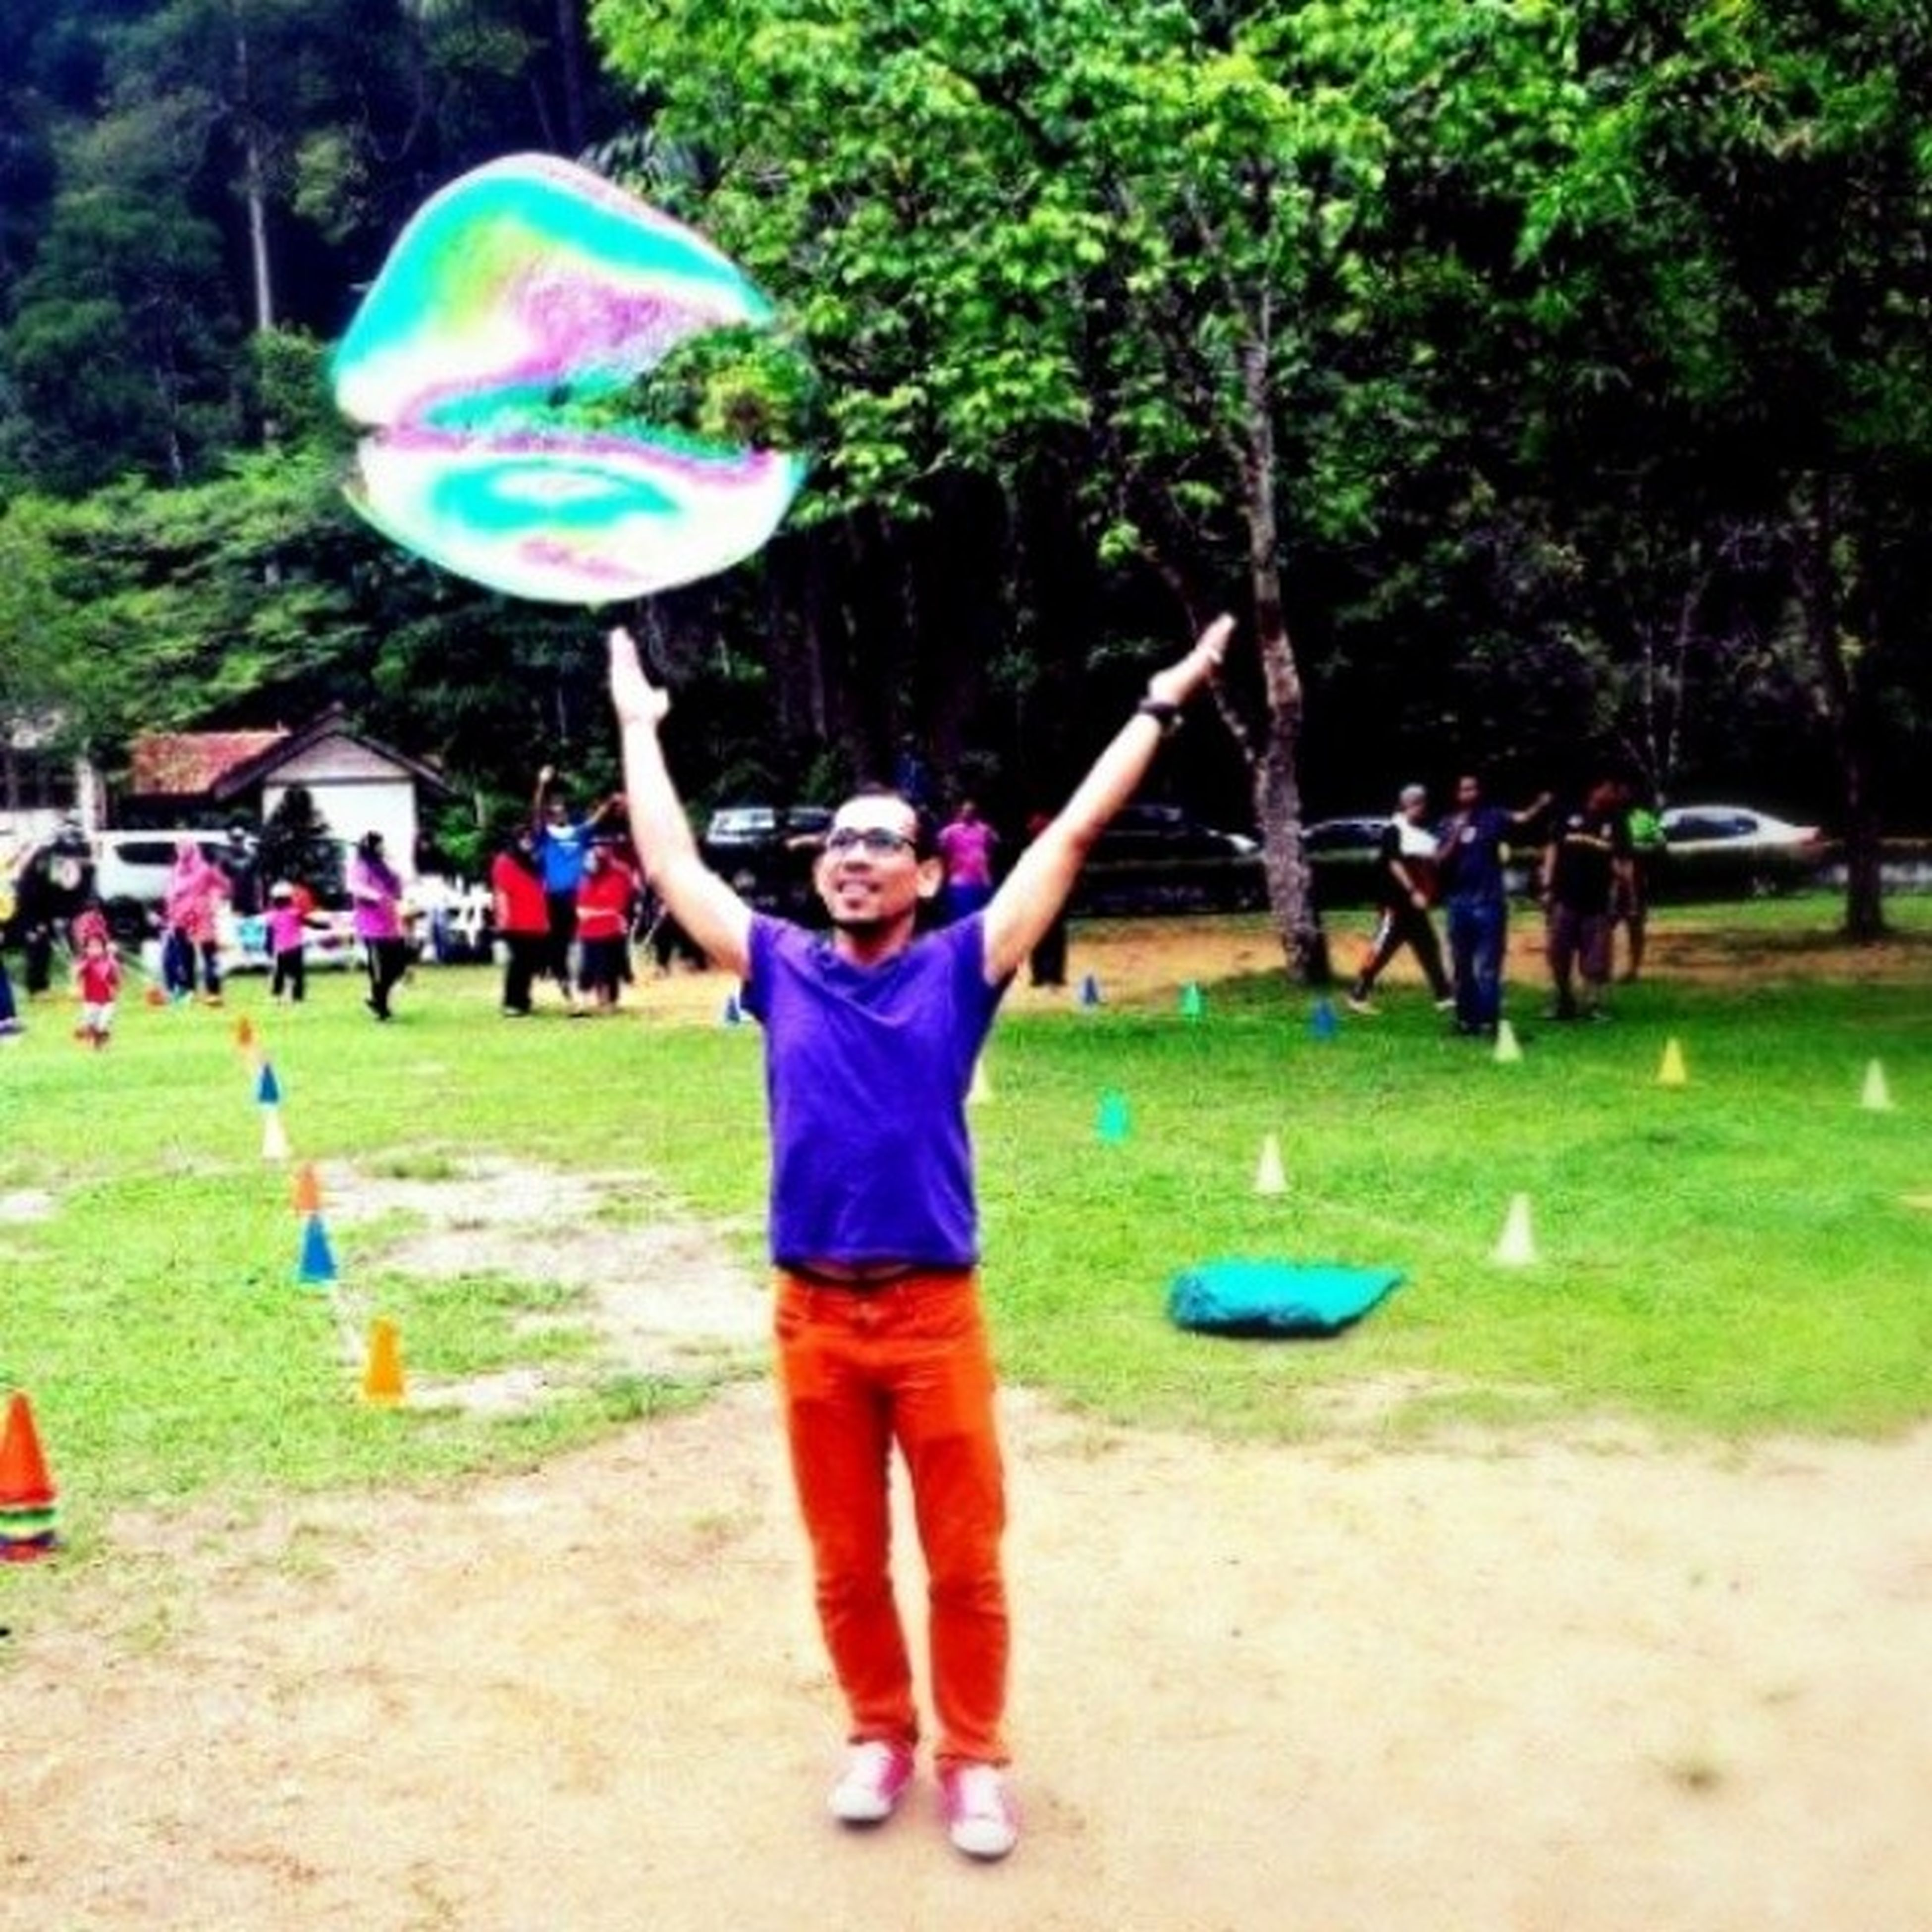 leisure activity, lifestyles, enjoyment, fun, playing, childhood, girls, full length, bubble, tree, grass, mid-air, boys, playful, casual clothing, elementary age, park - man made space, motion